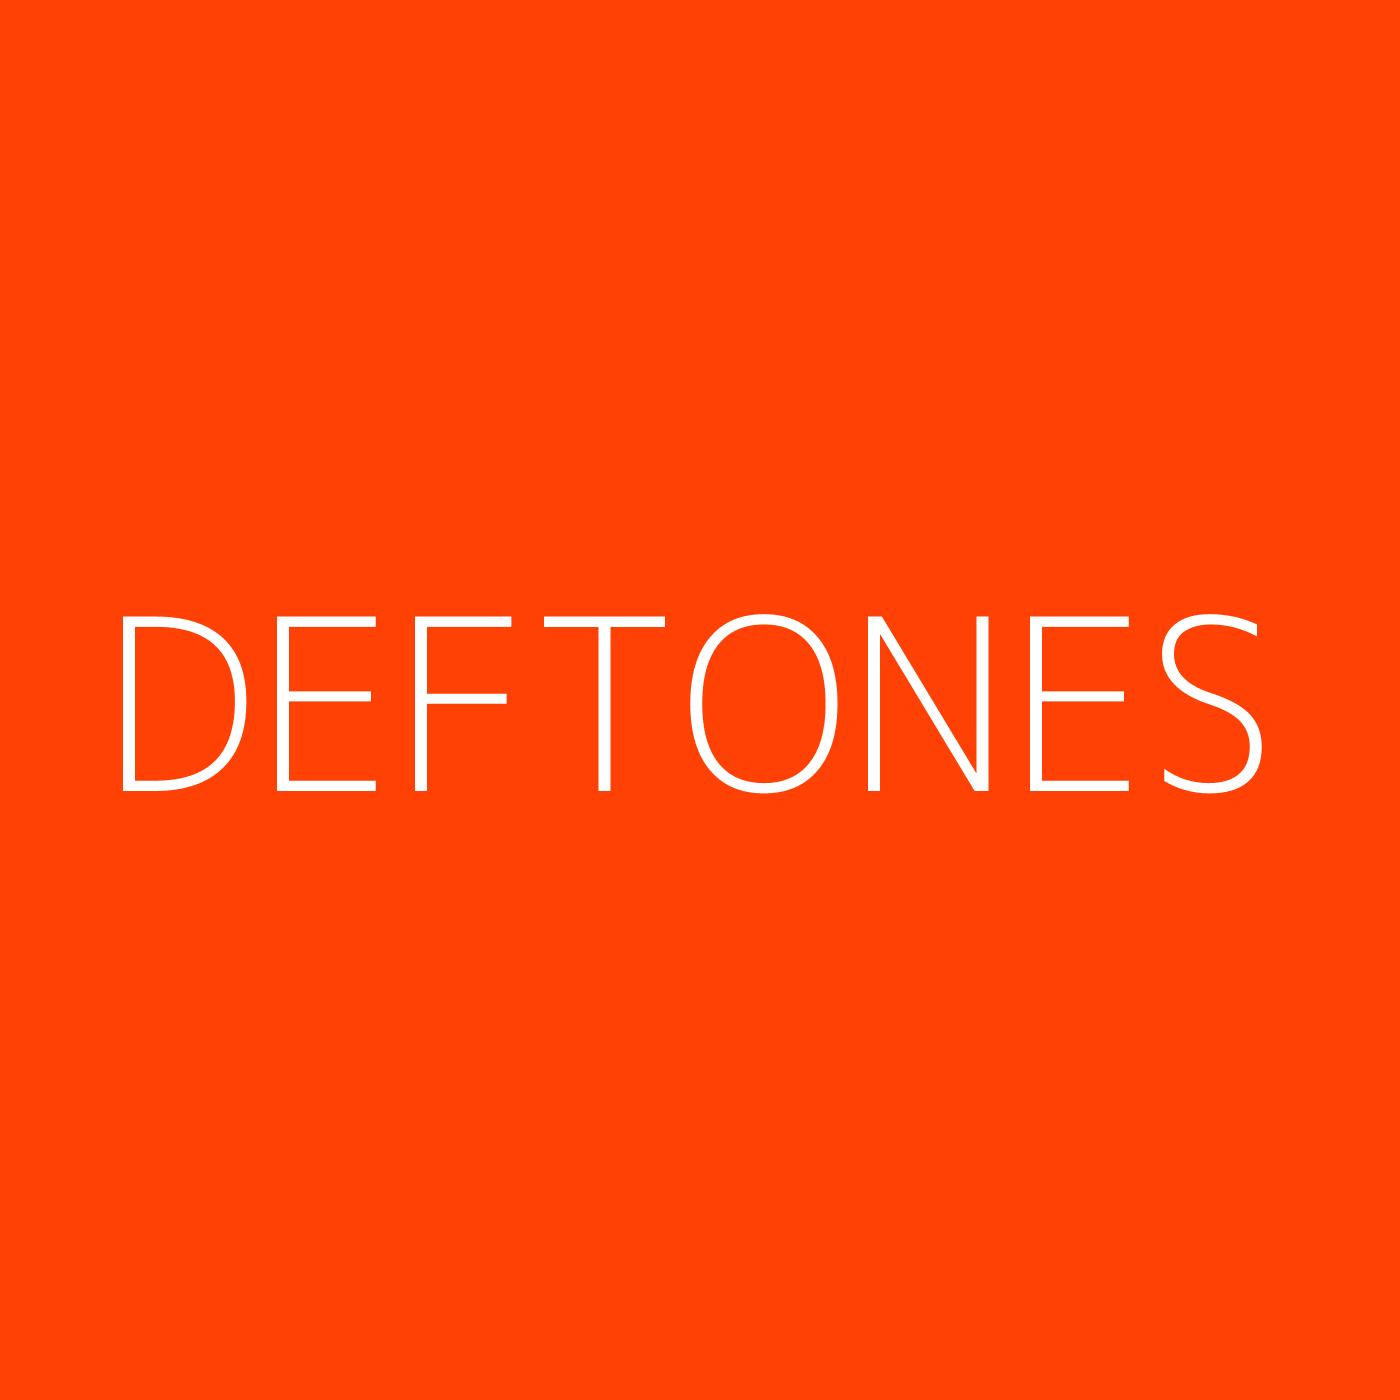 Deftones Playlist Artwork